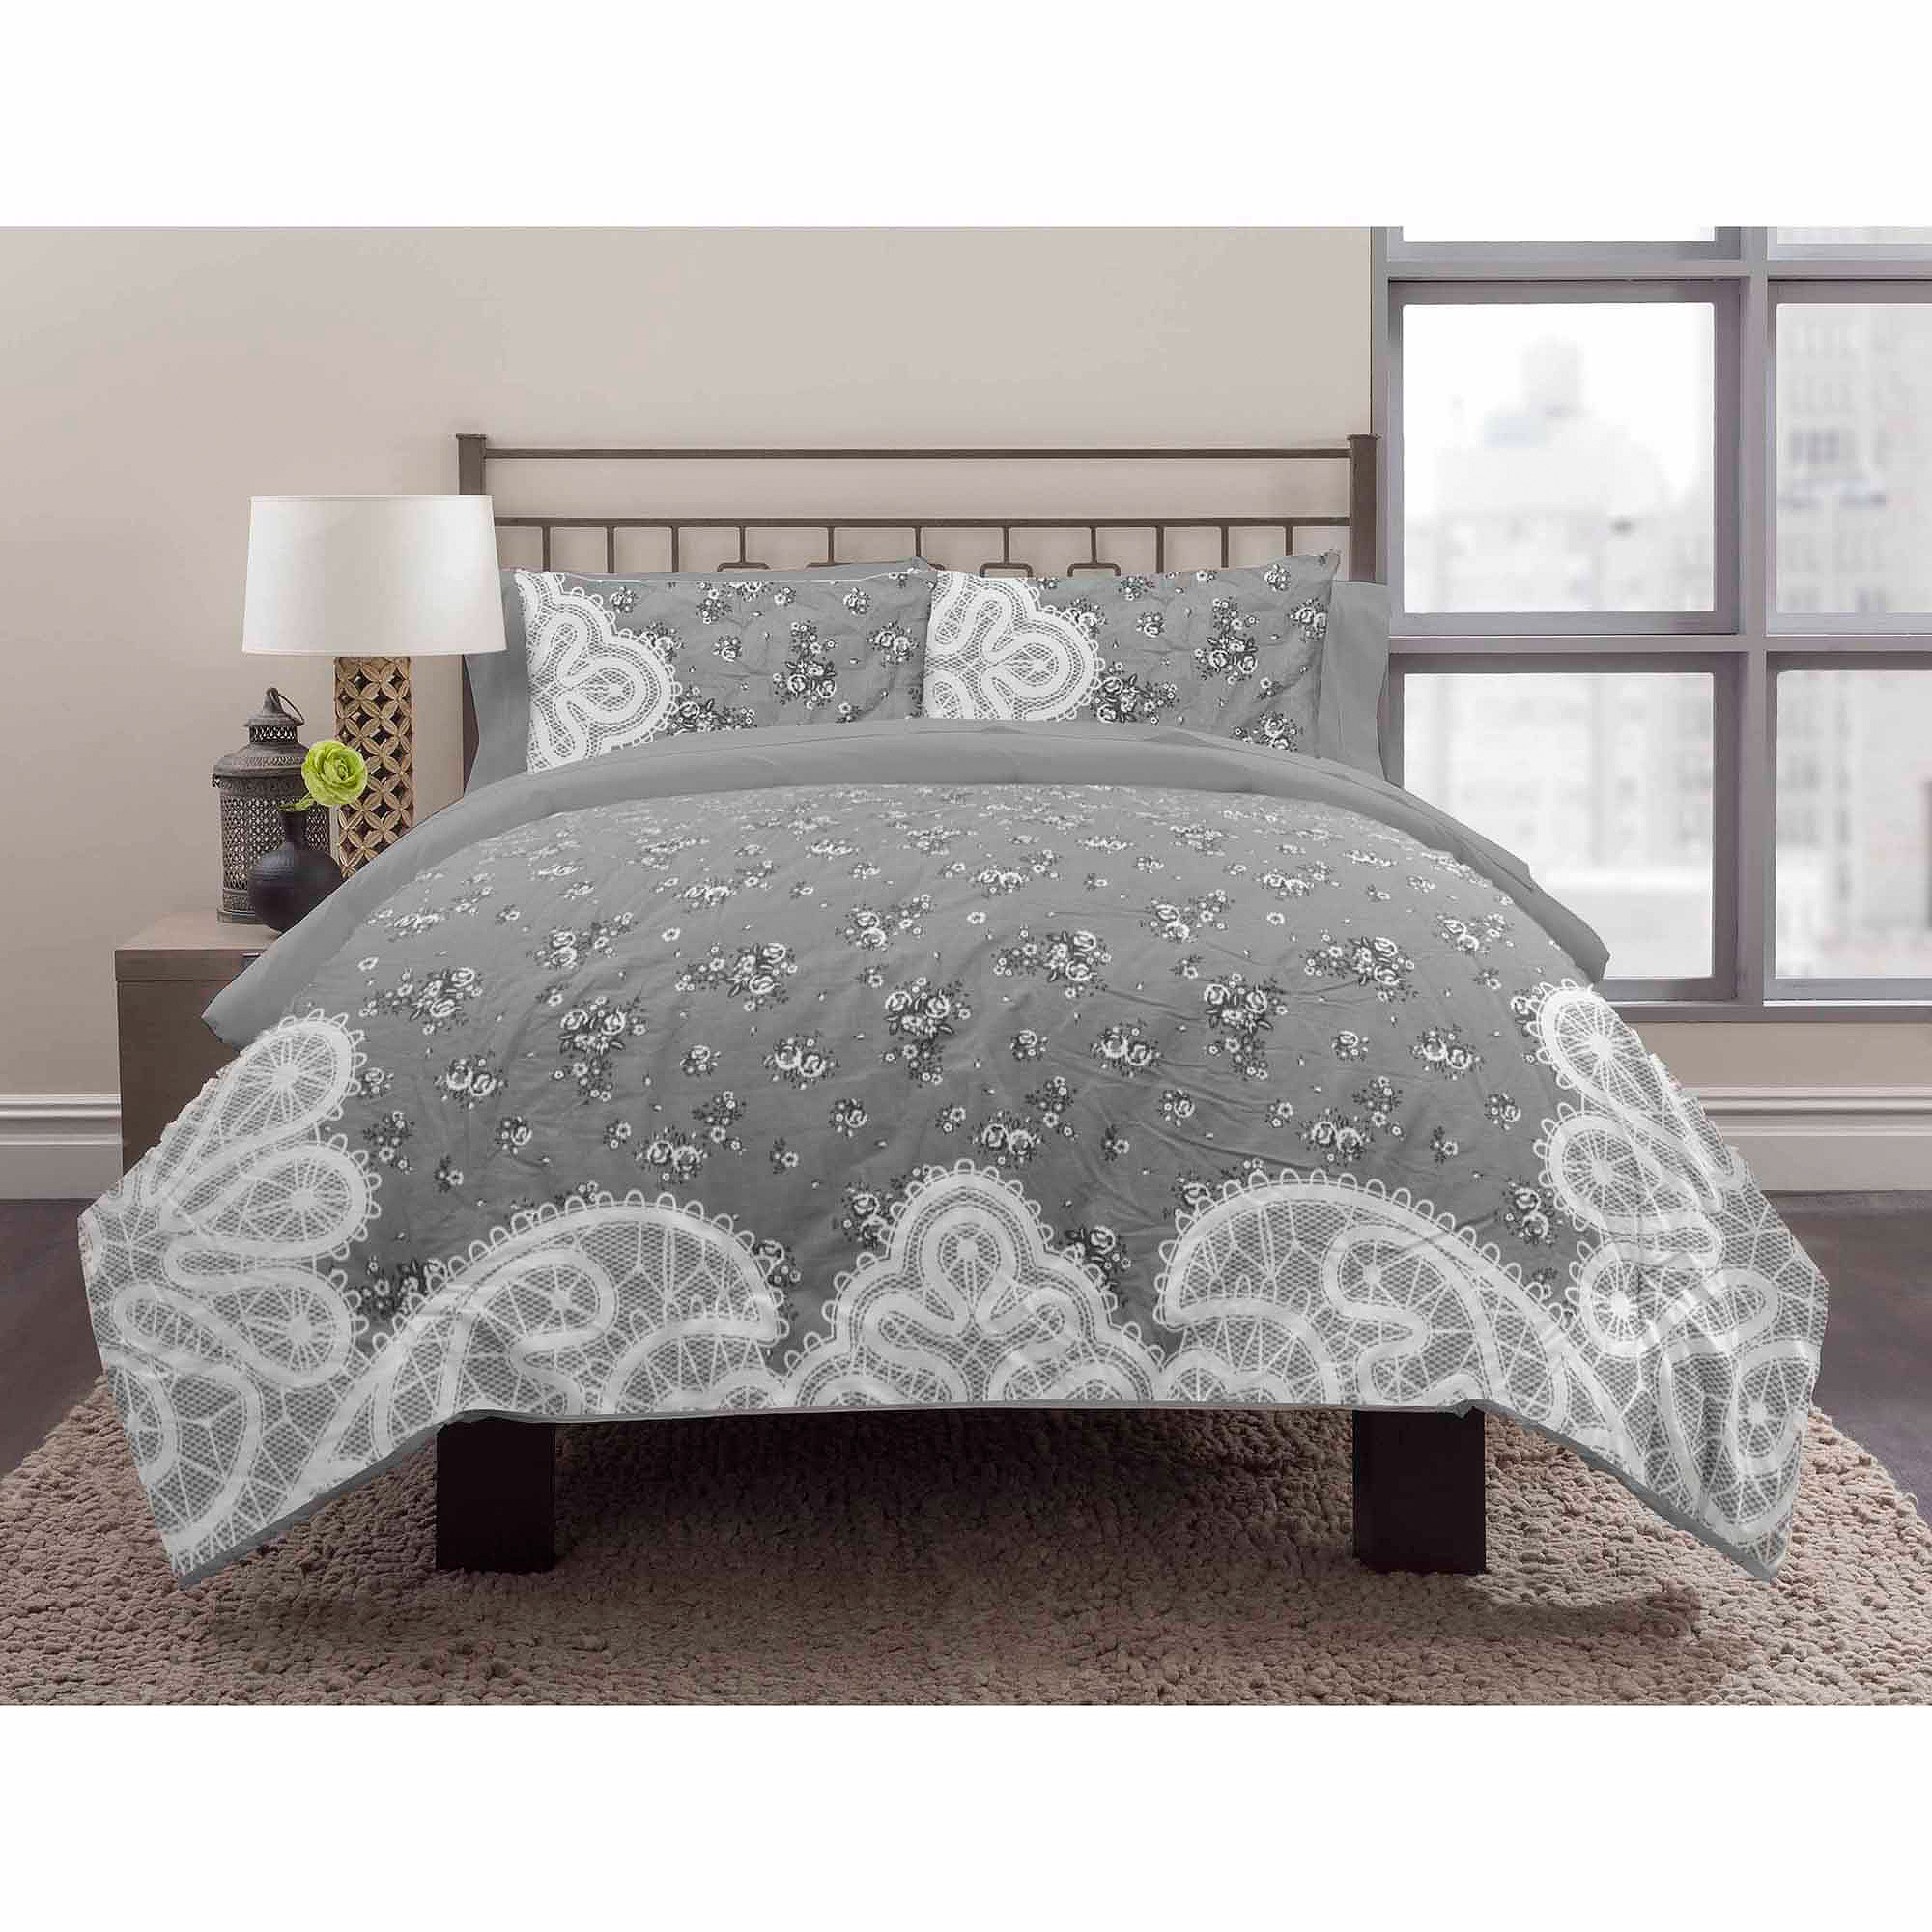 East End Living Lace Bedding Duvet Set Grey Walmart Com